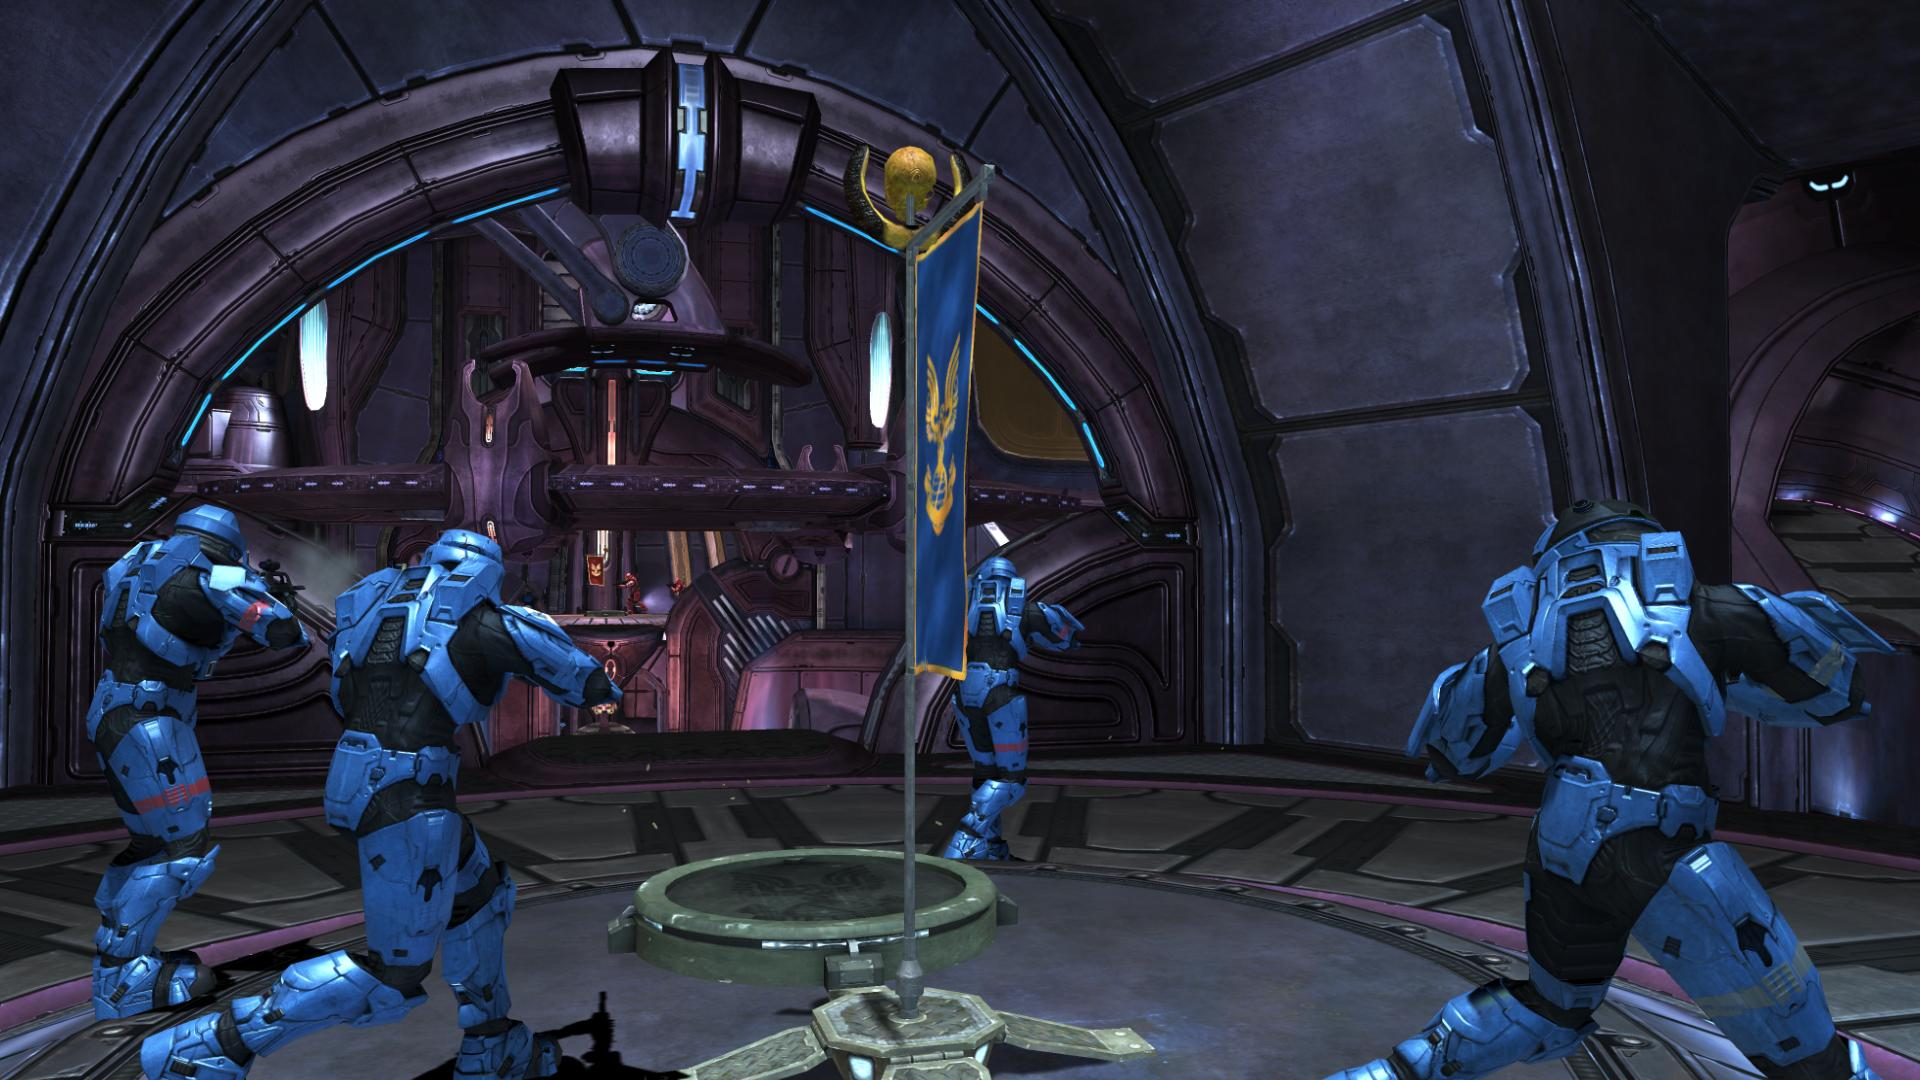 halo 2 game for pc free download full version